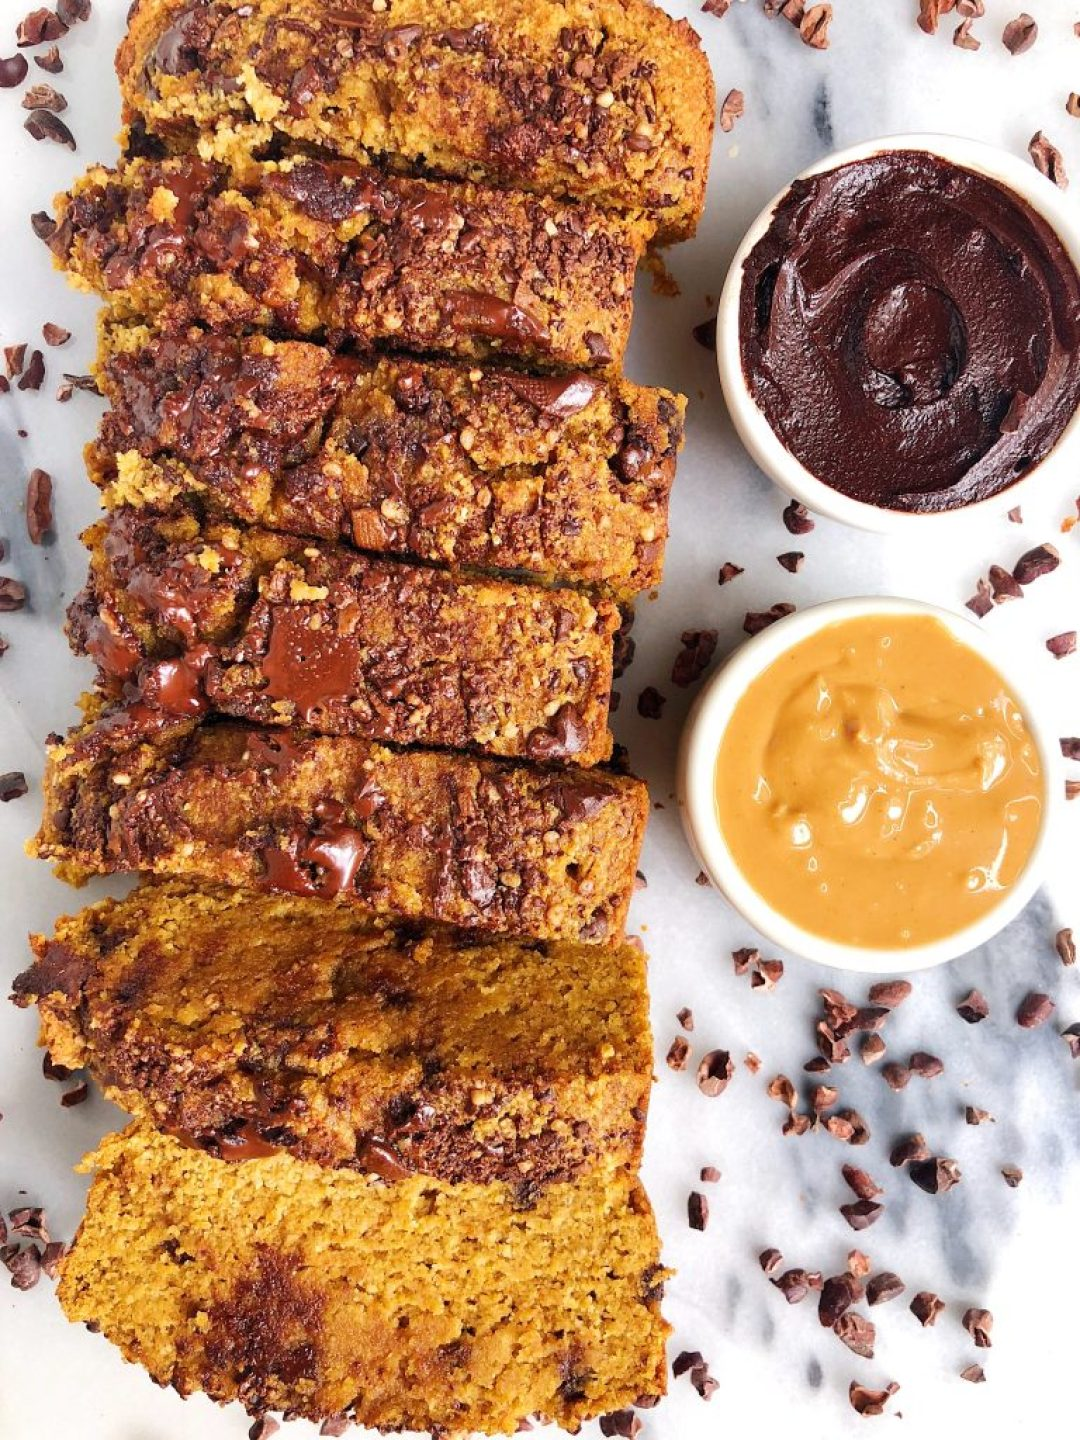 Paleo Pumpkin Chocolate Chip Breadwith Collagen Peptides for an easy and healthy pumpkin bread recipe, perfect for breakfast or snacking!